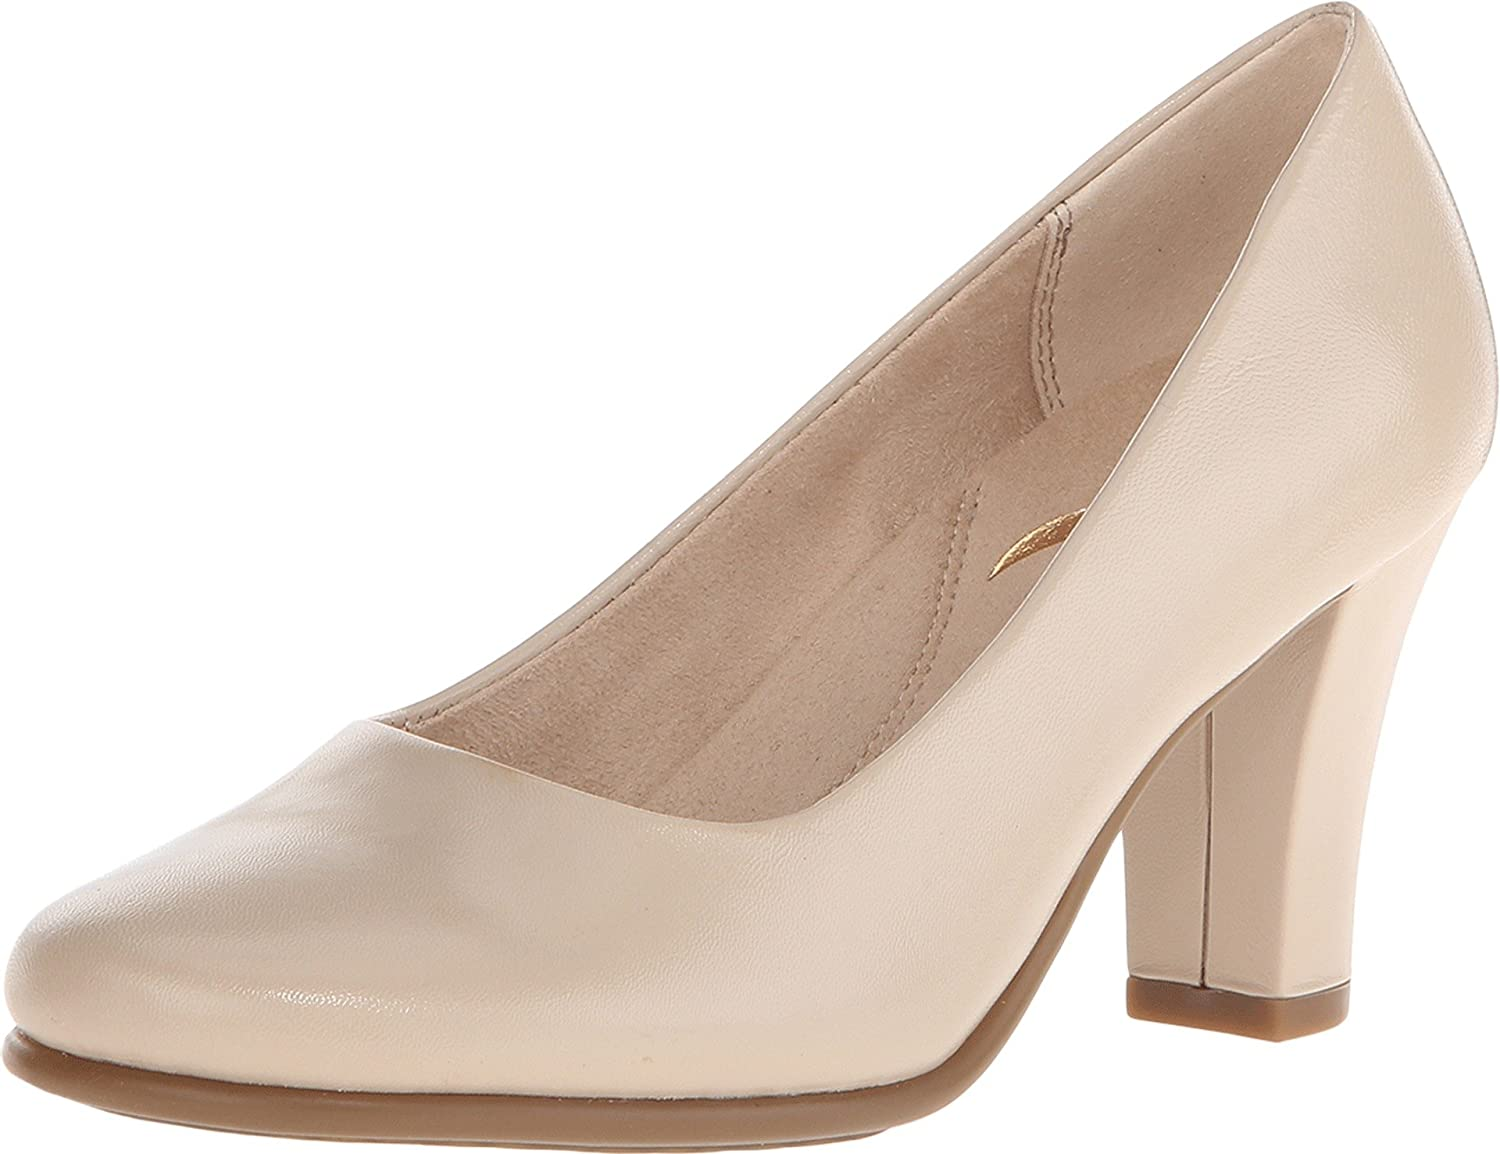 Aerosoles Womens Dolled Up